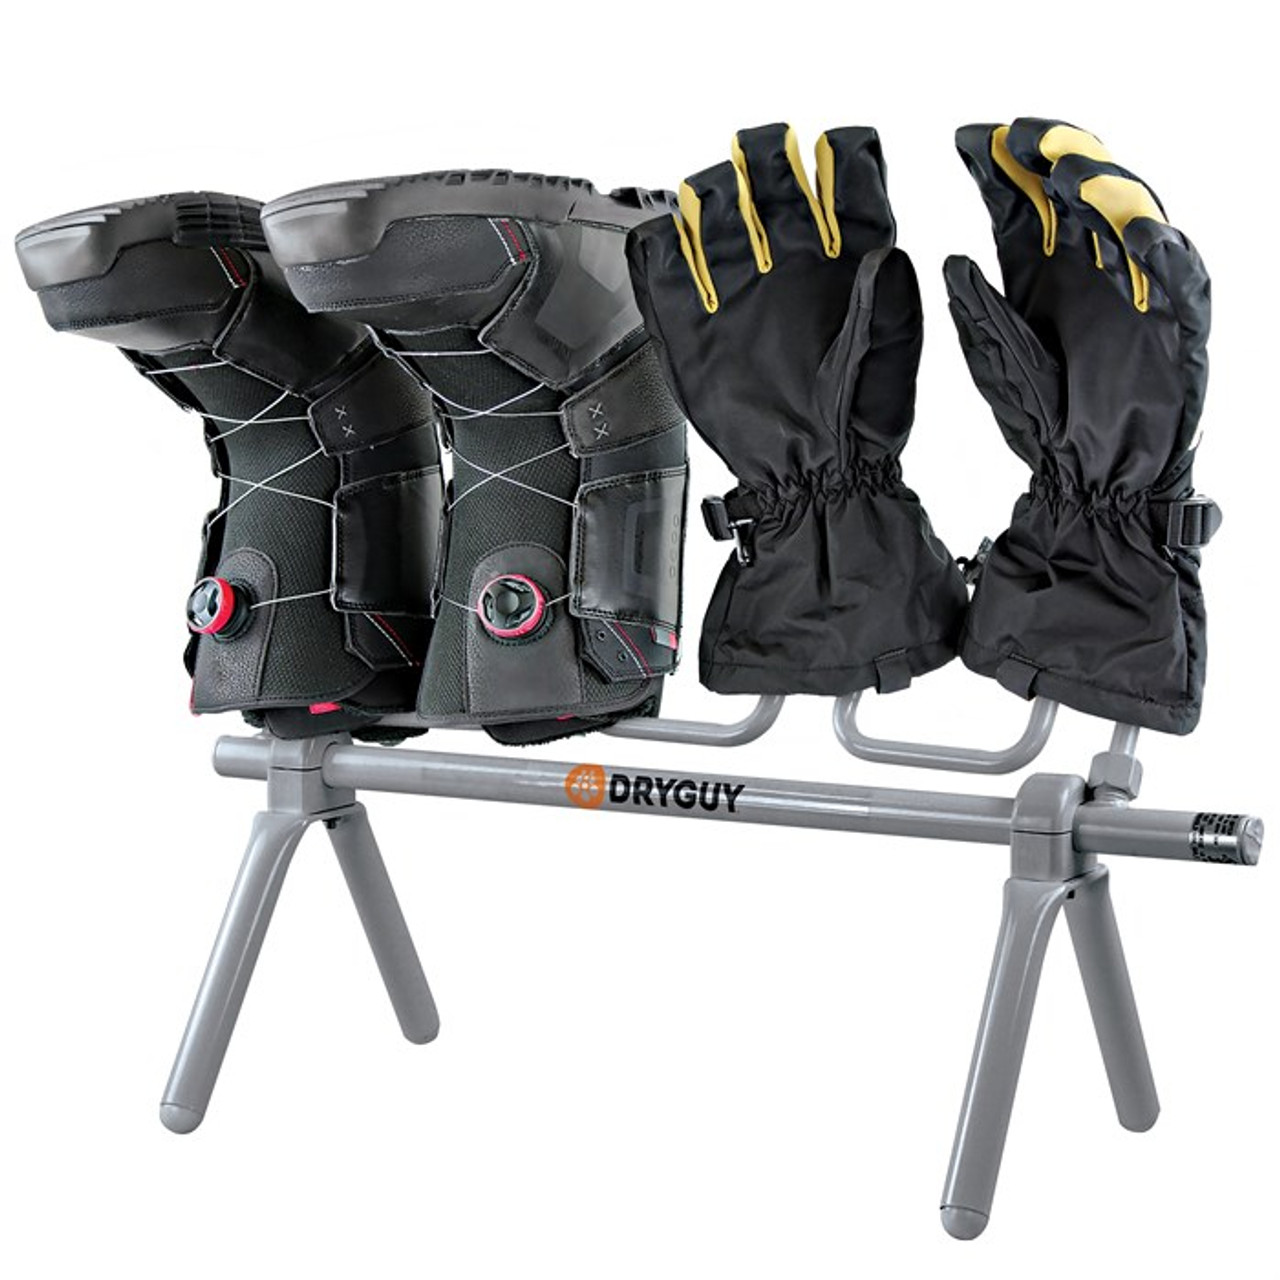 Ski Boot Drying Rack | Glove and Gear Dryer